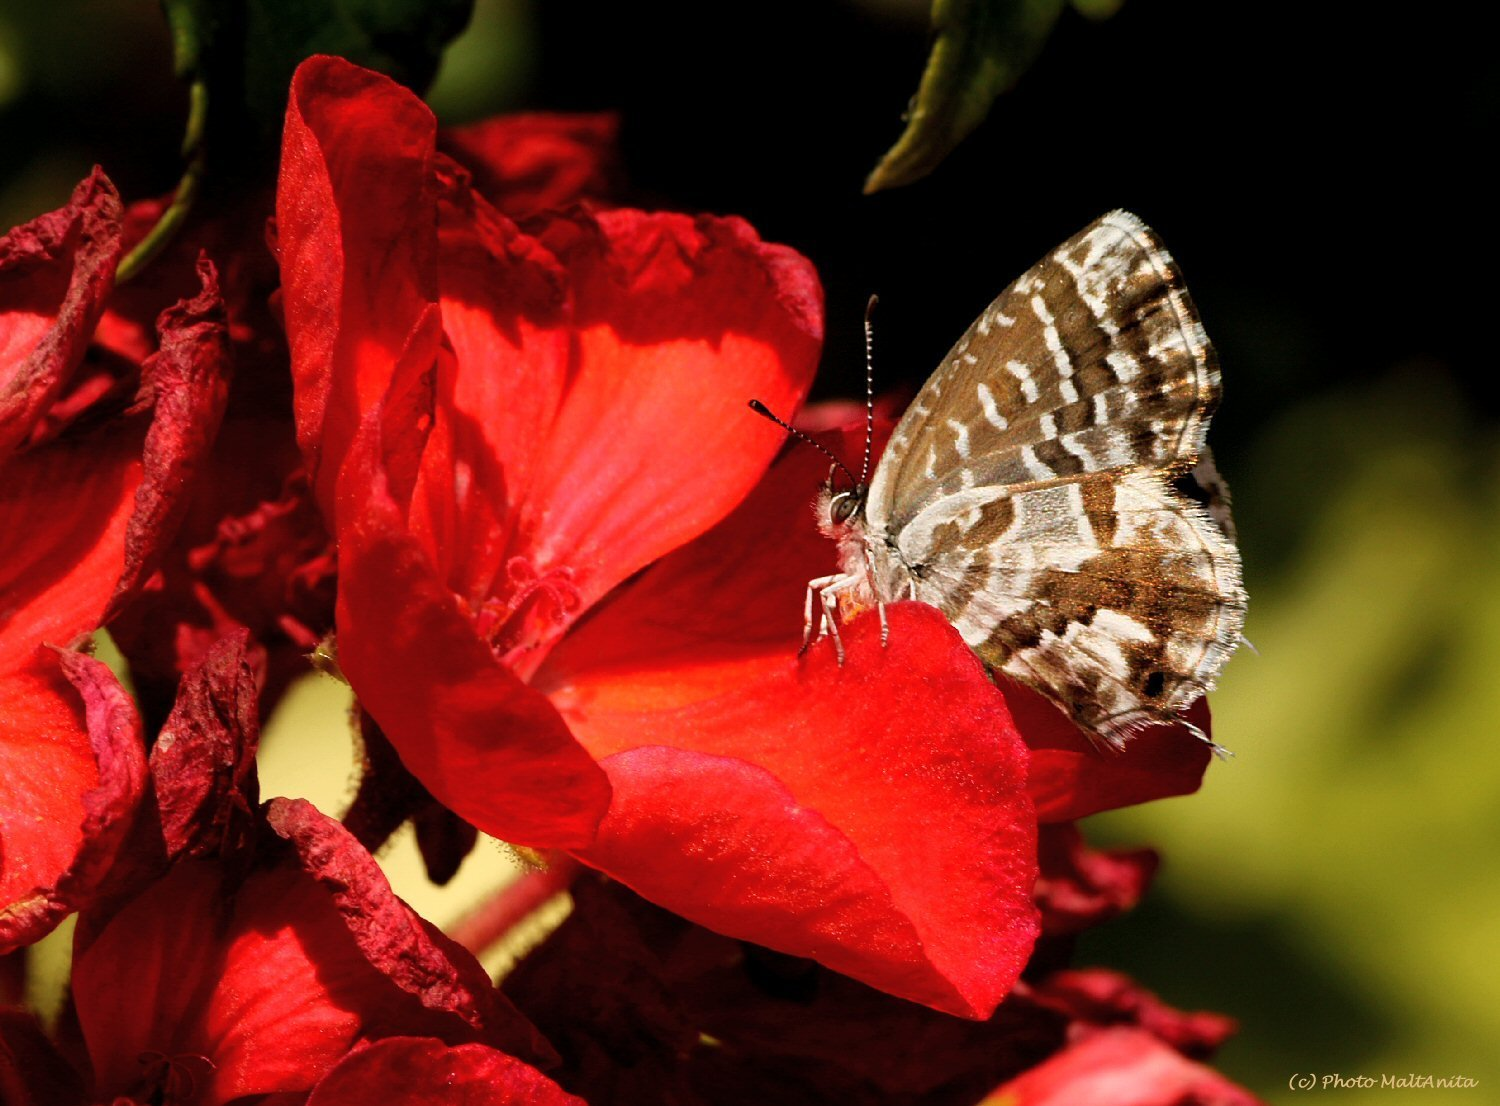 IMG_1146-1-PS